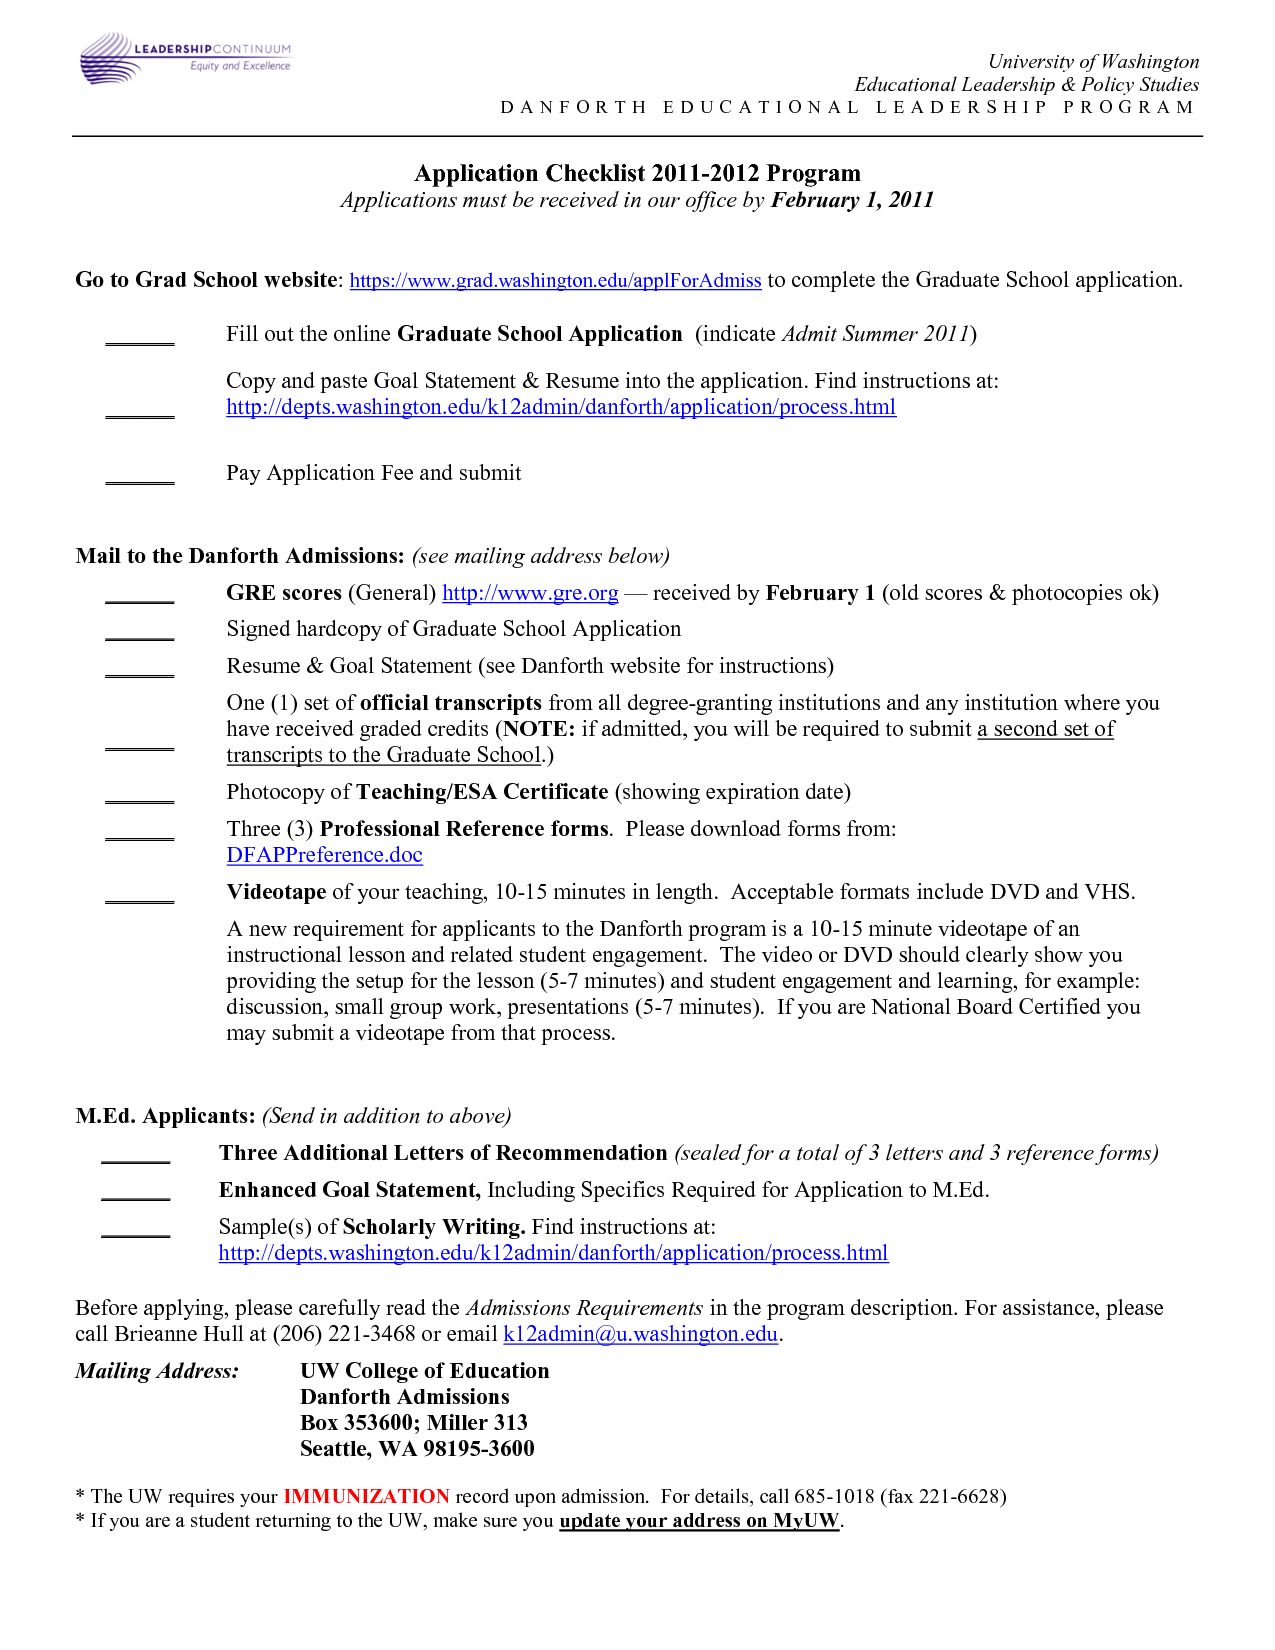 Copy And Paste Resume Templates Graduate School Resume Format  Httpwwwresumecareer